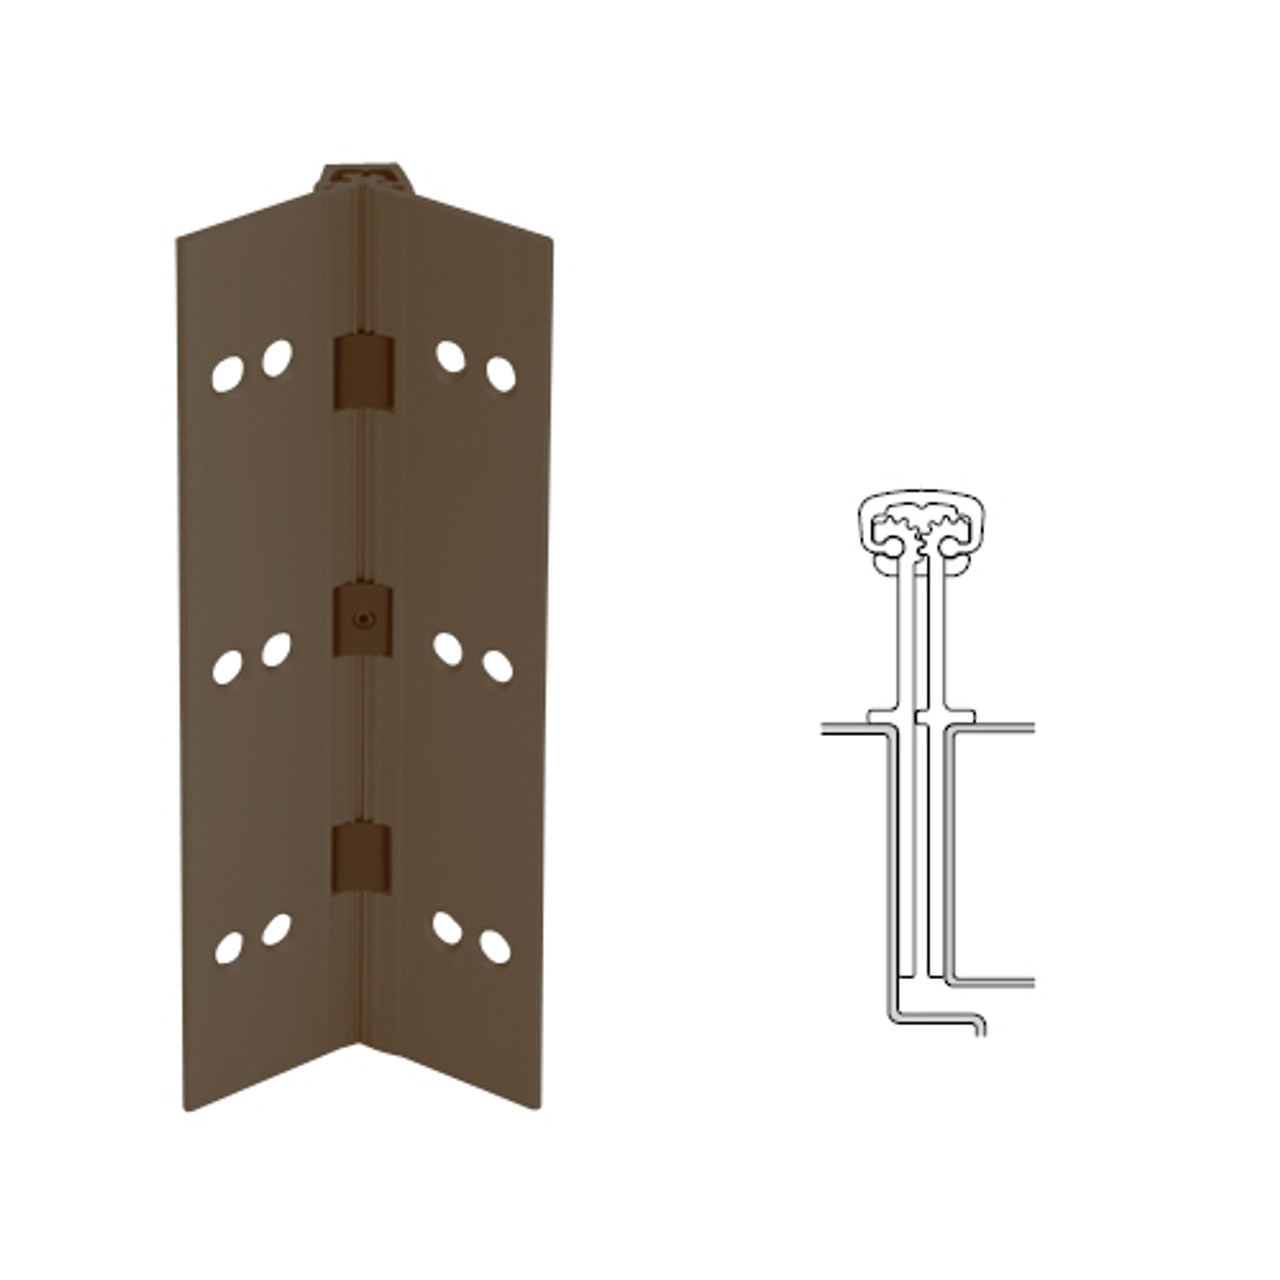 040XY-313AN-83-SECHM IVES Full Mortise Continuous Geared Hinges with Security Screws - Hex Pin Drive in Dark Bronze Anodized